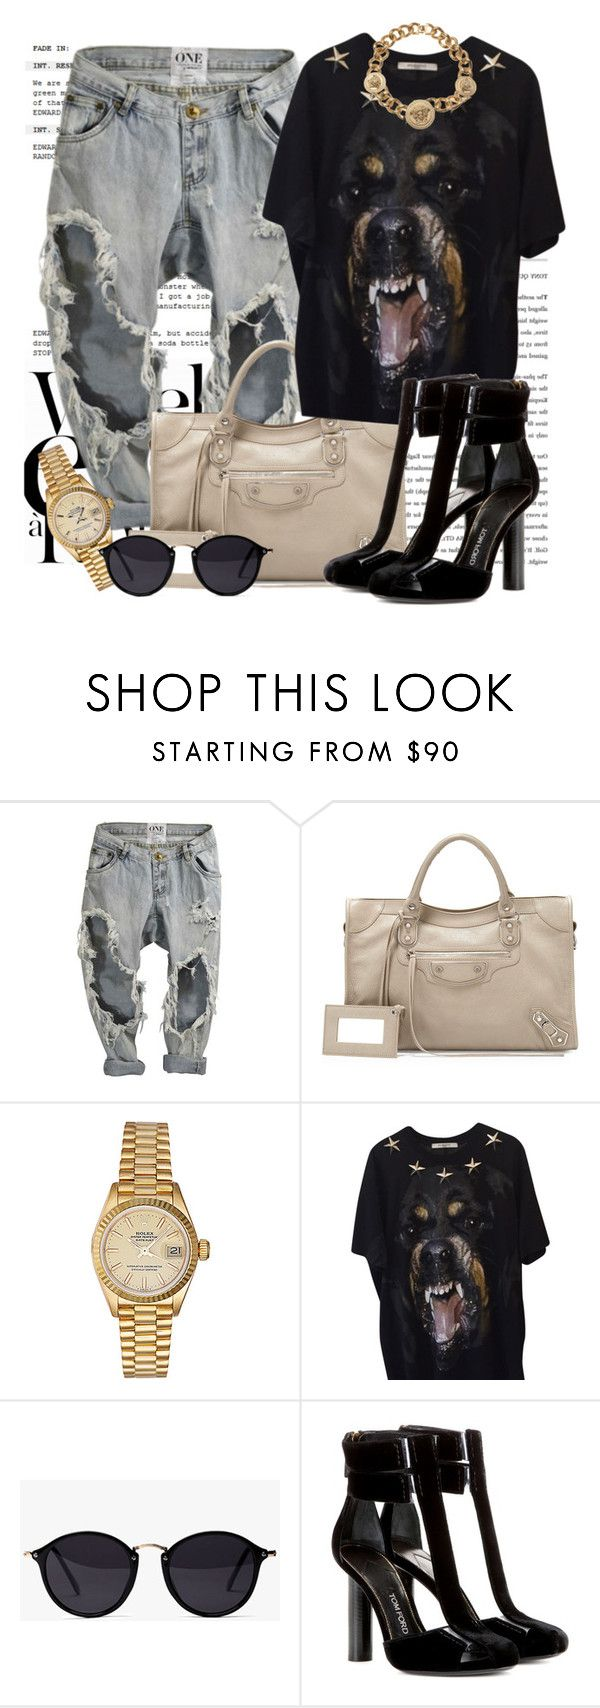 """Untitled #1283"" by noviii ❤ liked on Polyvore featuring LARA, Balenciaga, Rolex, Givenchy, Tom Ford and Versace"